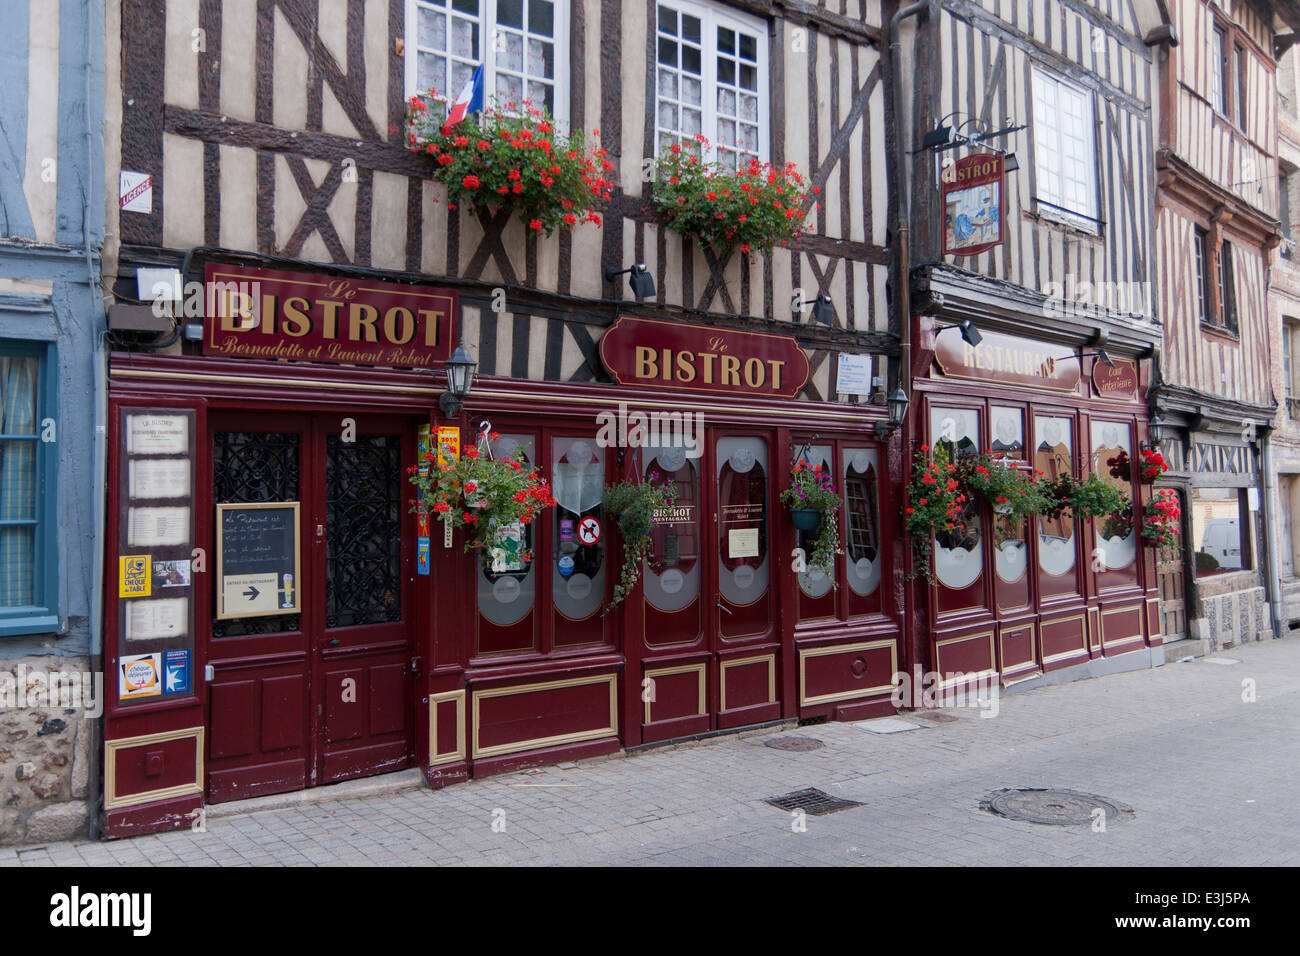 French bistro in old timber framed building. - Stock Image